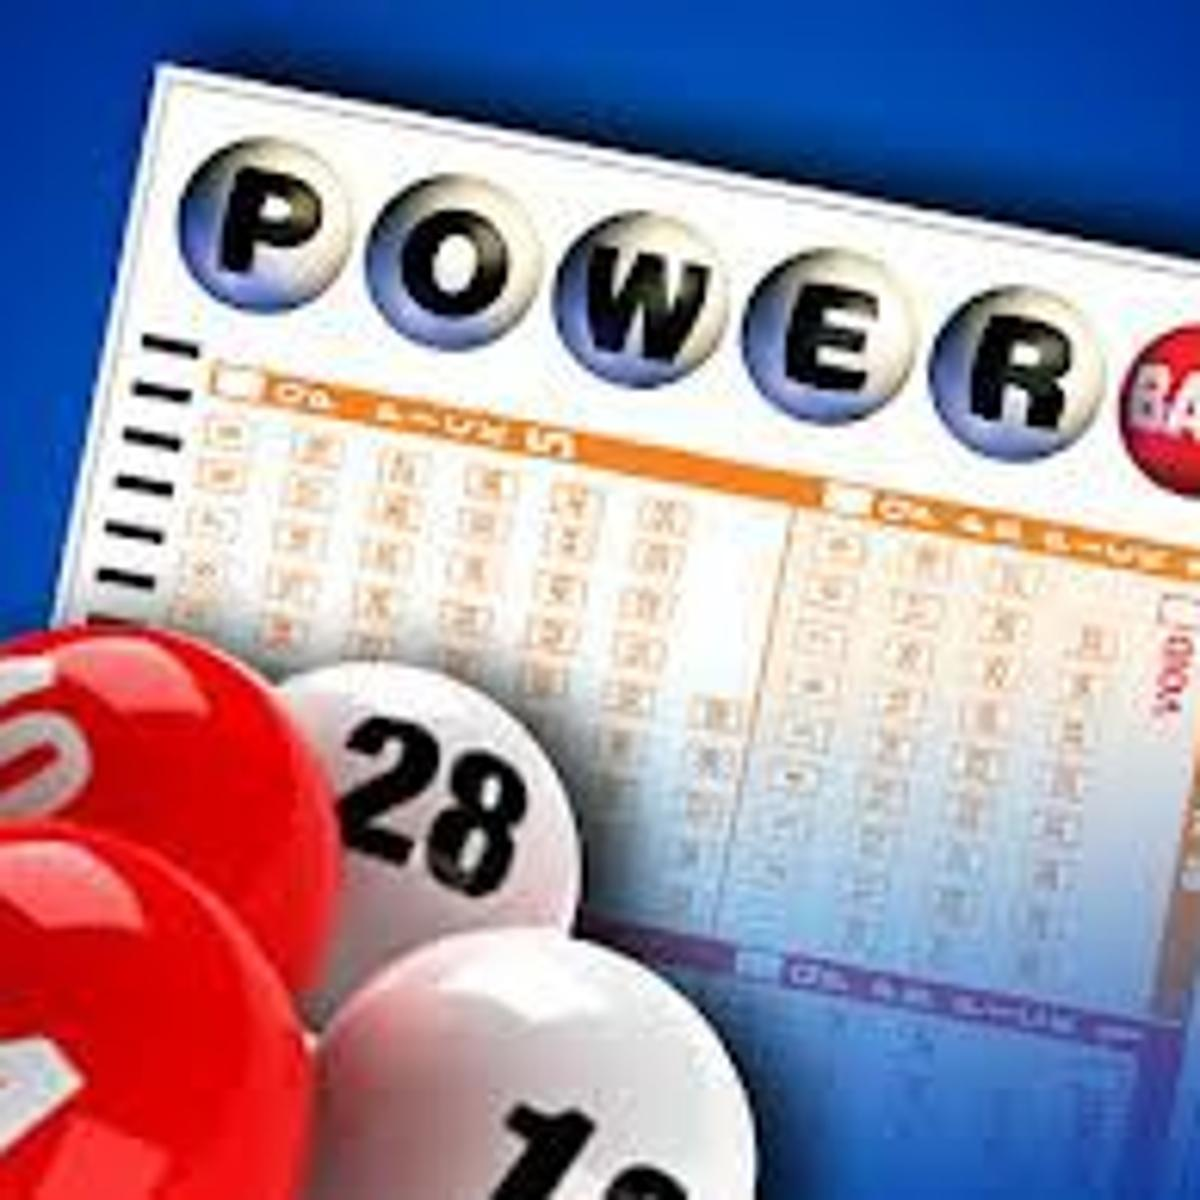 Unclaimed Powerball prize to be given away in Iowa Lottery promotion